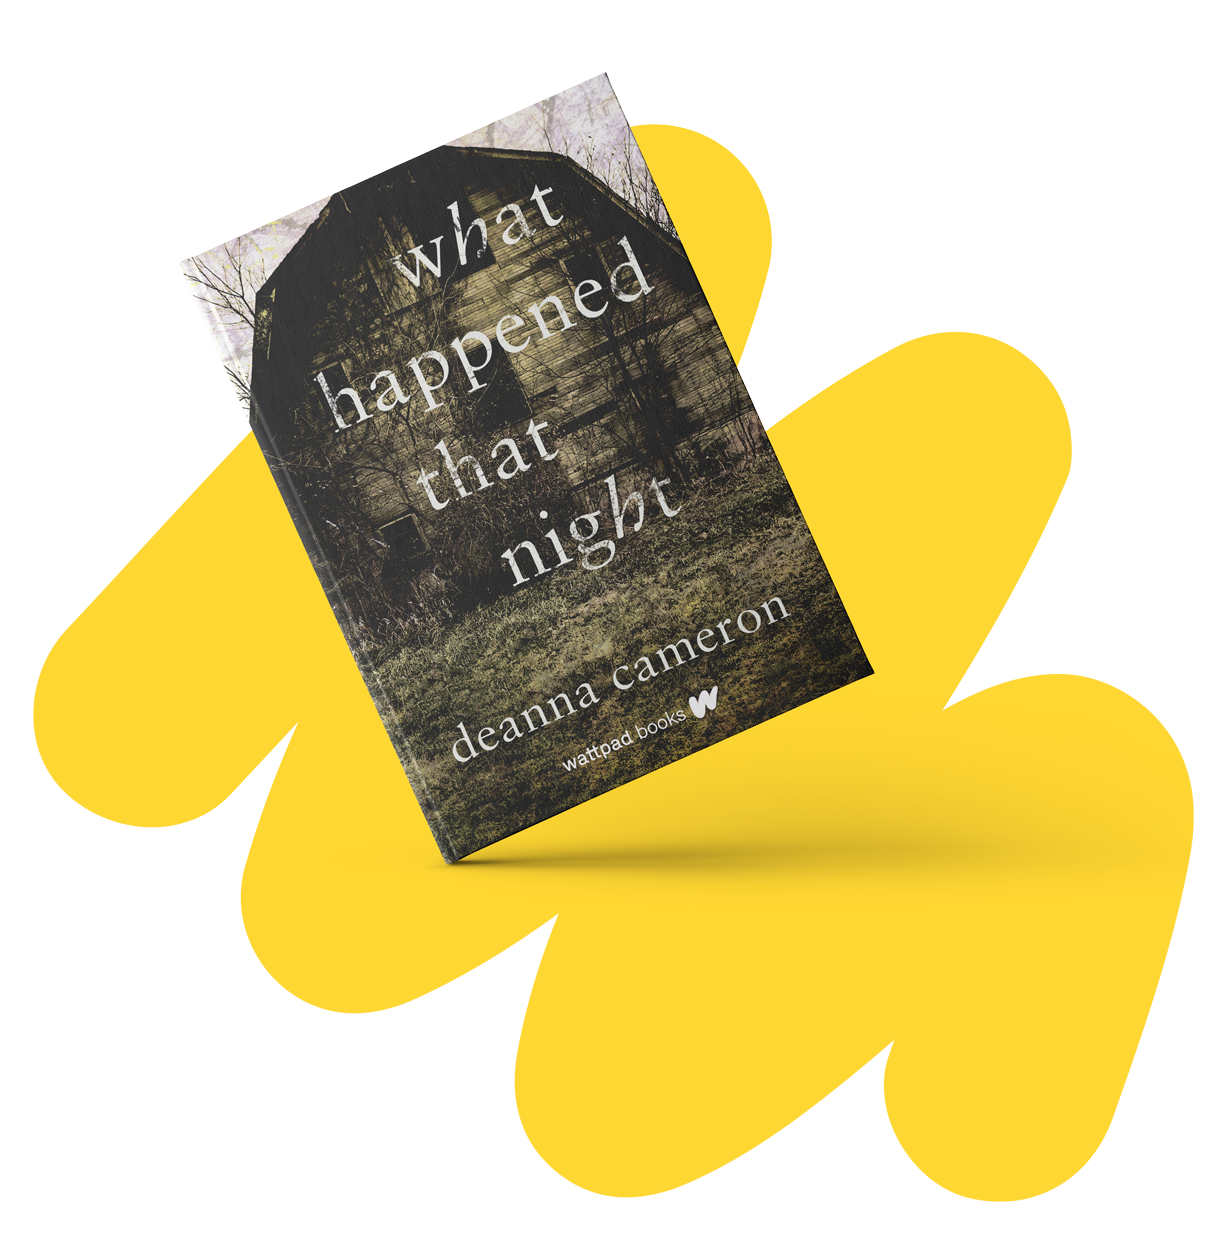 What Happened That Night - Written by Deanna Cameron (@LyssFrom1996)Available September 17, 2019 9780993689918$18.99 / 416 pages / 5.25 x 8.25 Young AdultAvailable for pre-order at Indigo, Amazon, and Barnes and Noble!